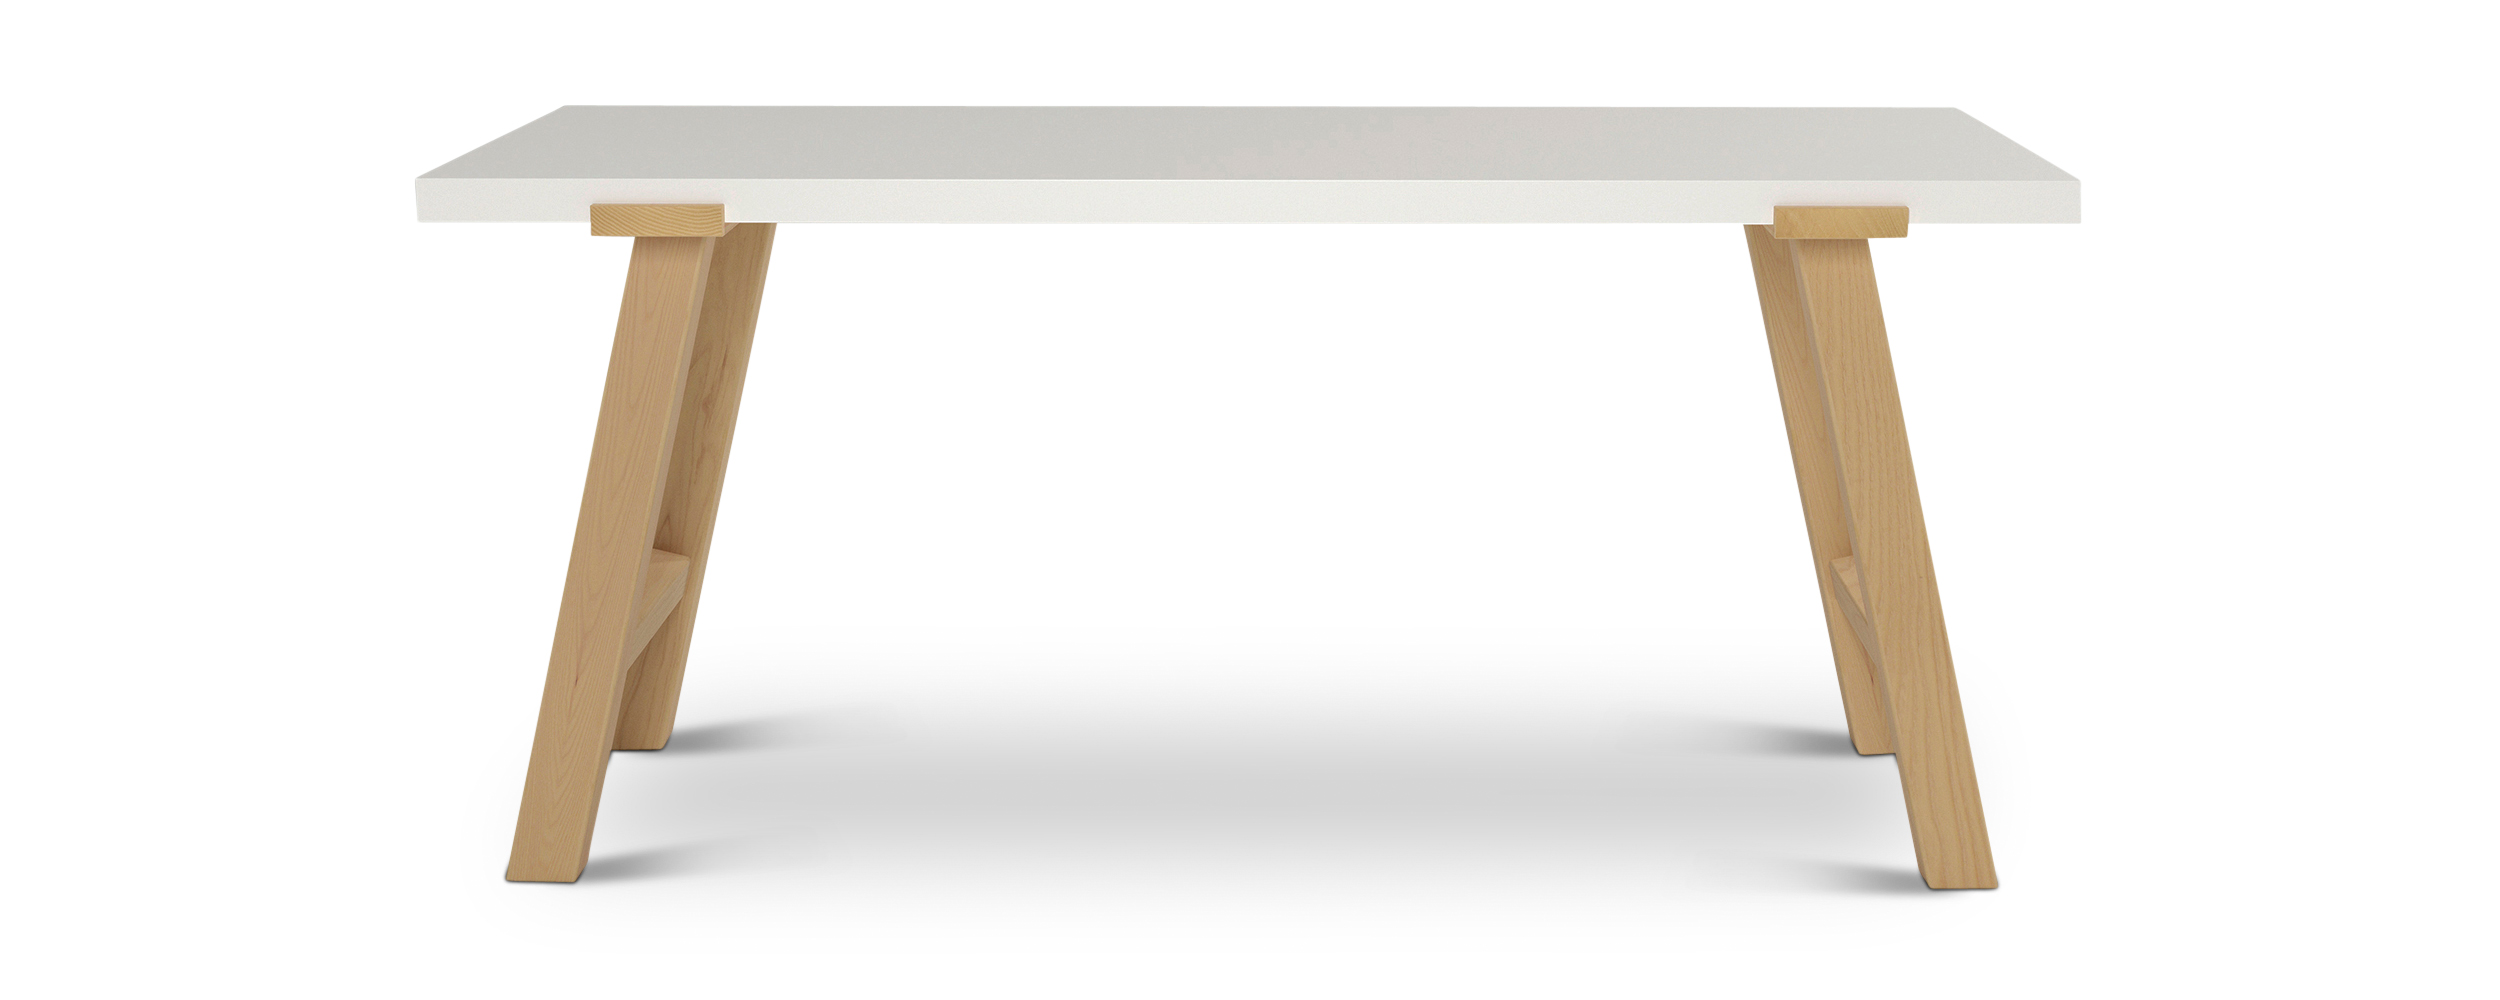 Pulten.1 modern danish desk with real wood legs and a white top